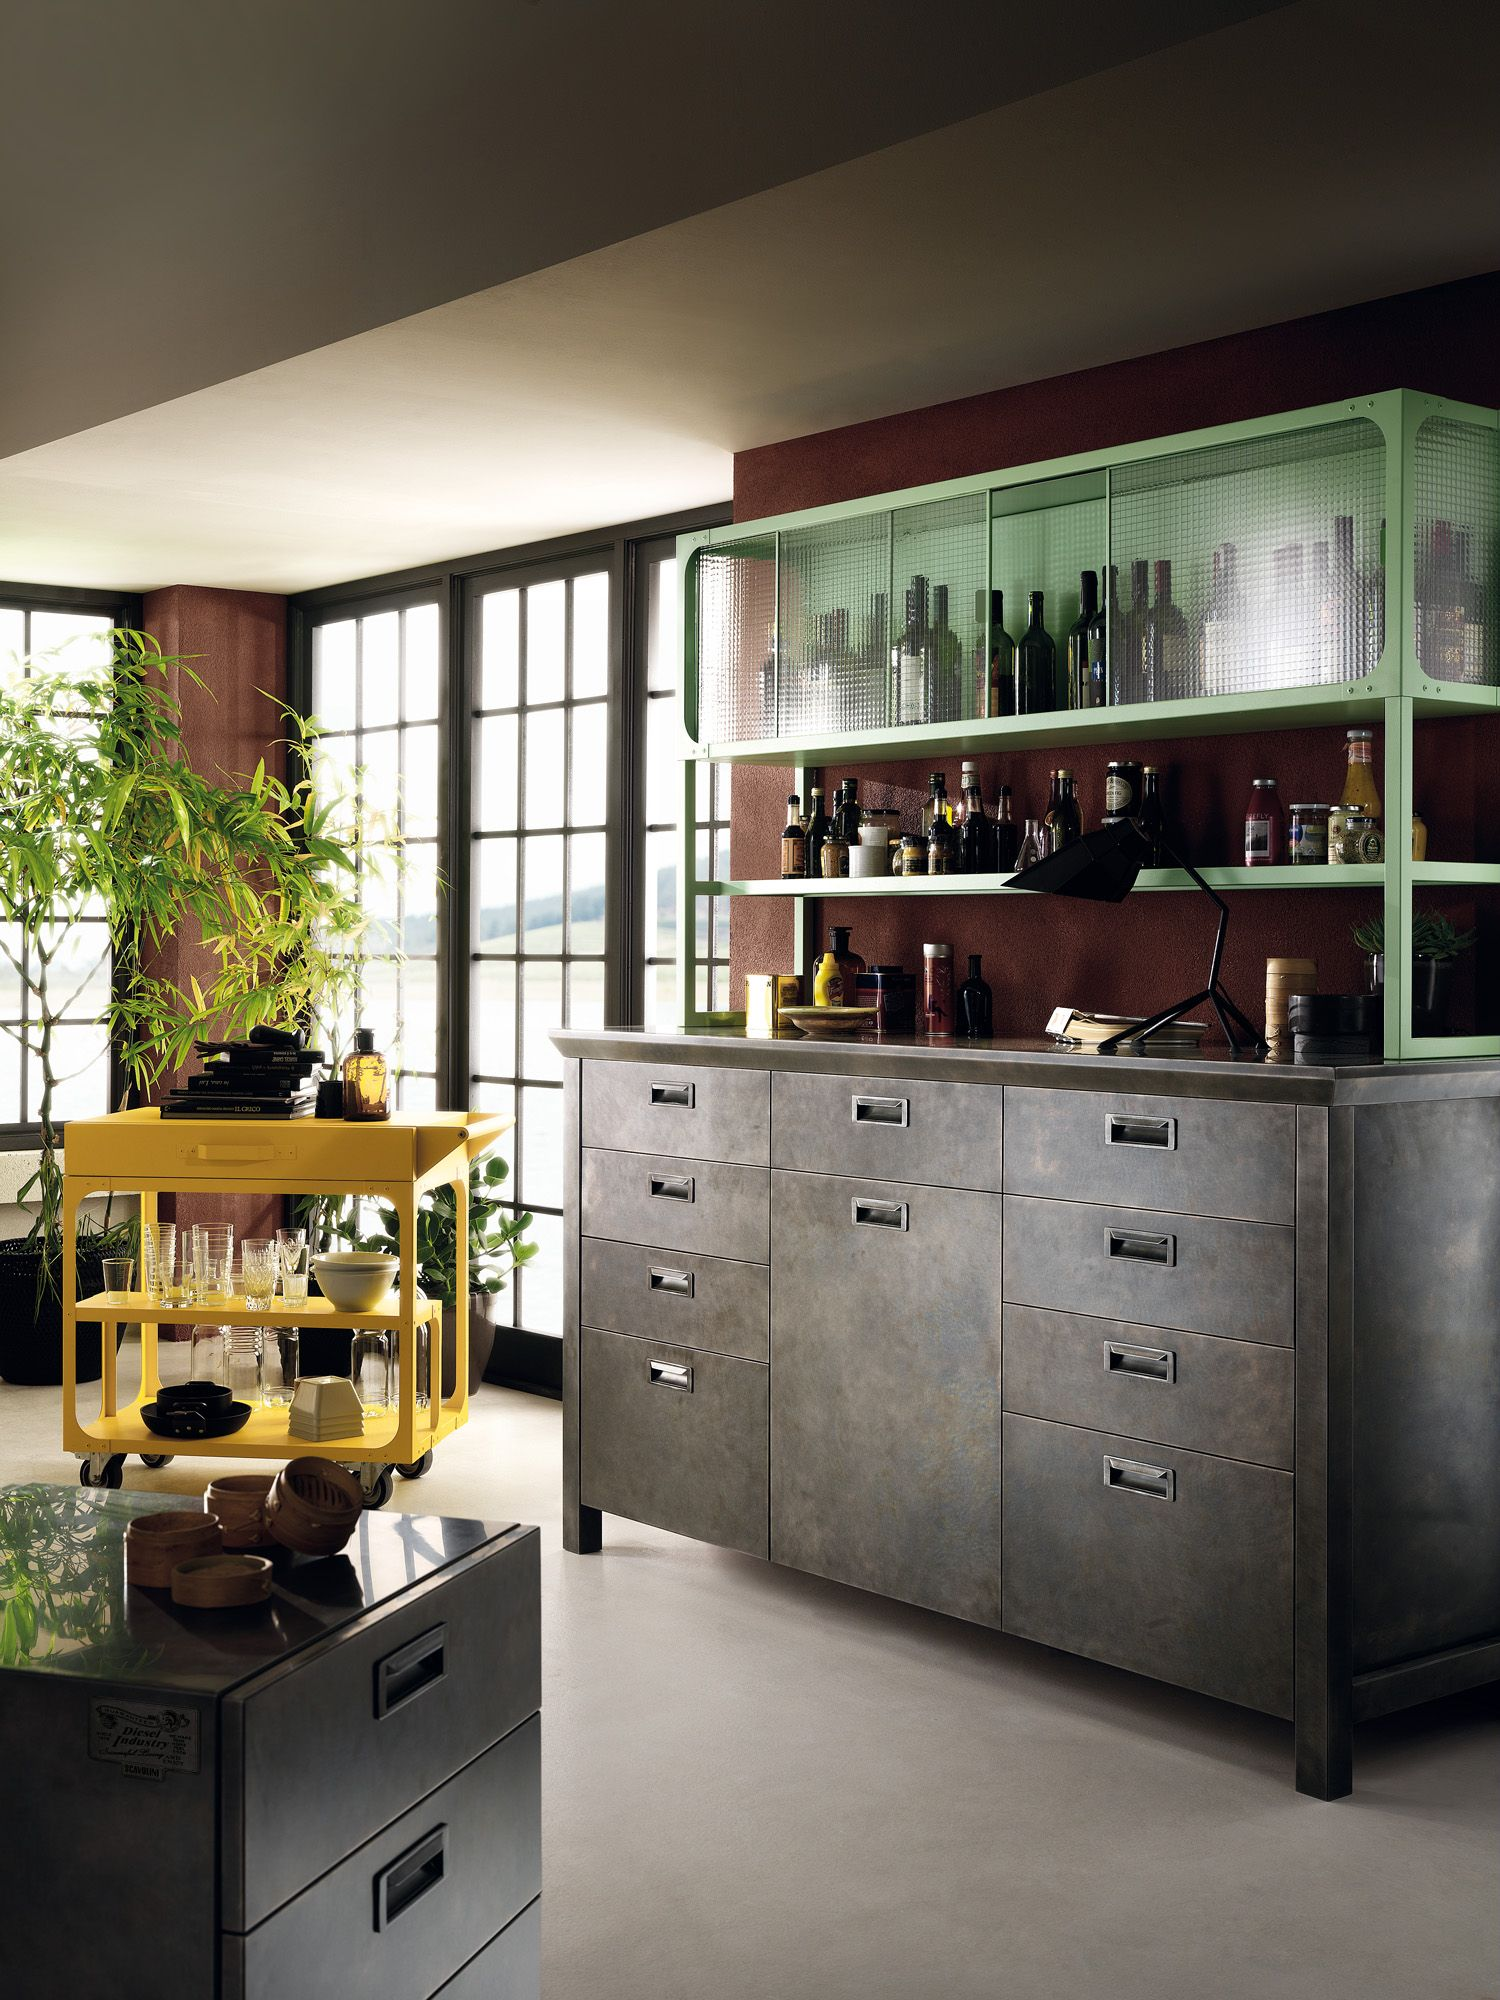 Diesel Social Kitchen design by Diesel. Vintage and innovation ...